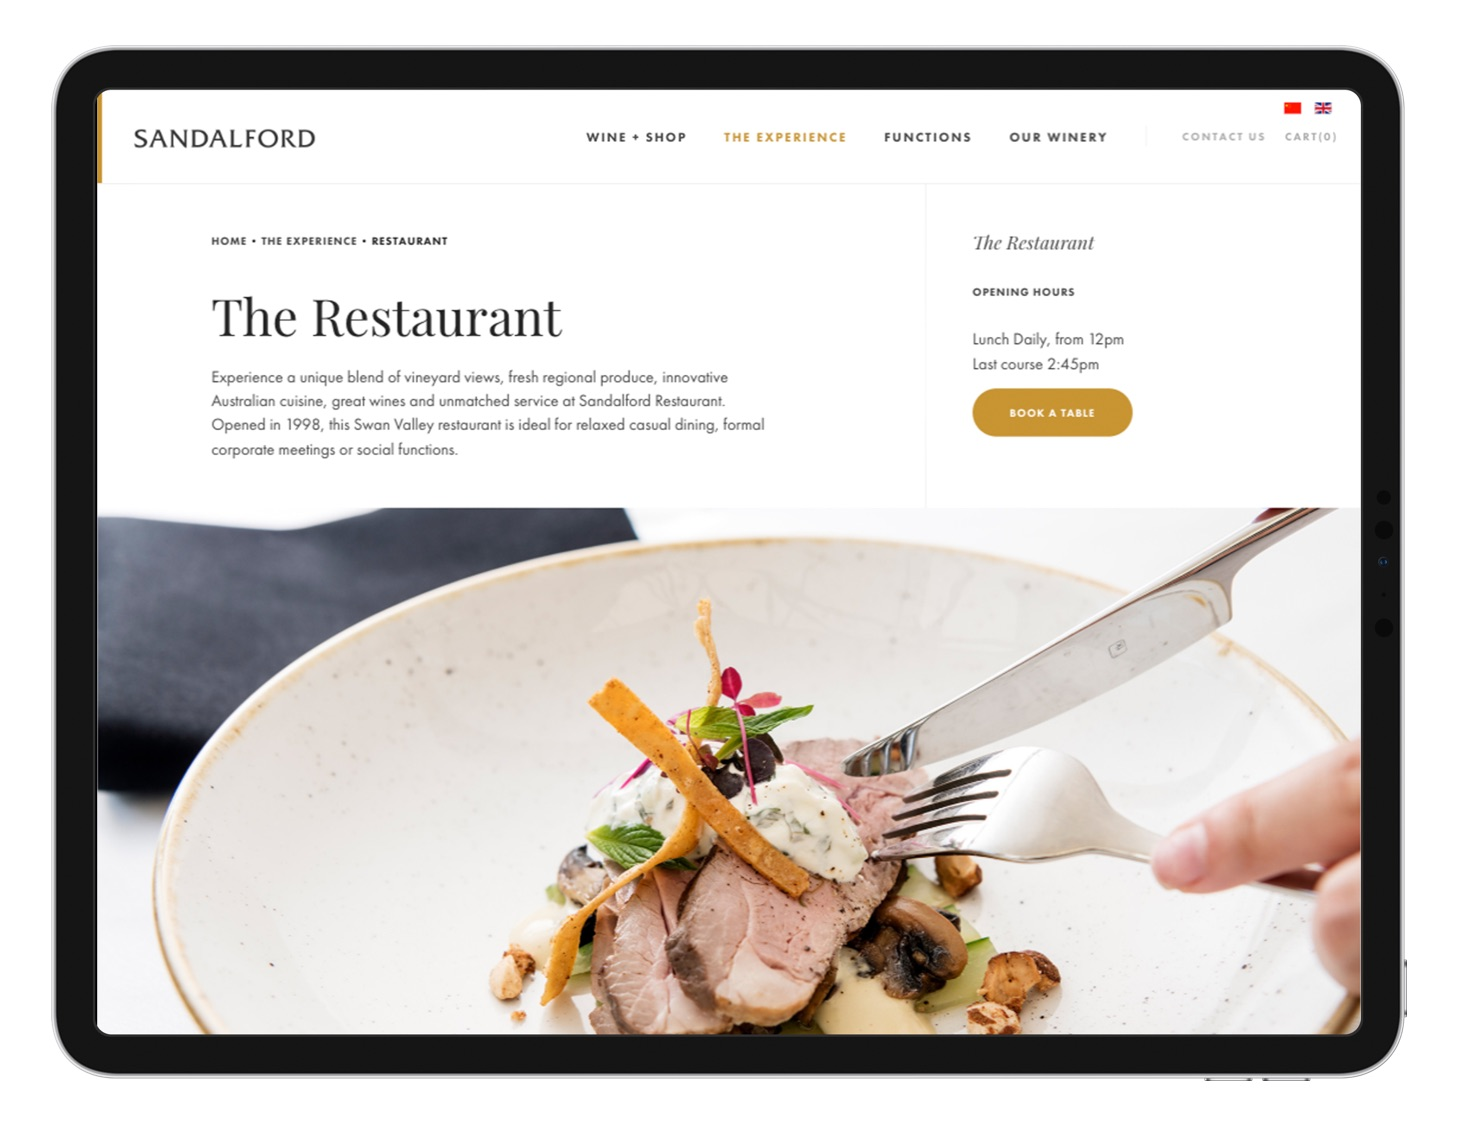 ipad device with Sandalford restaurant page